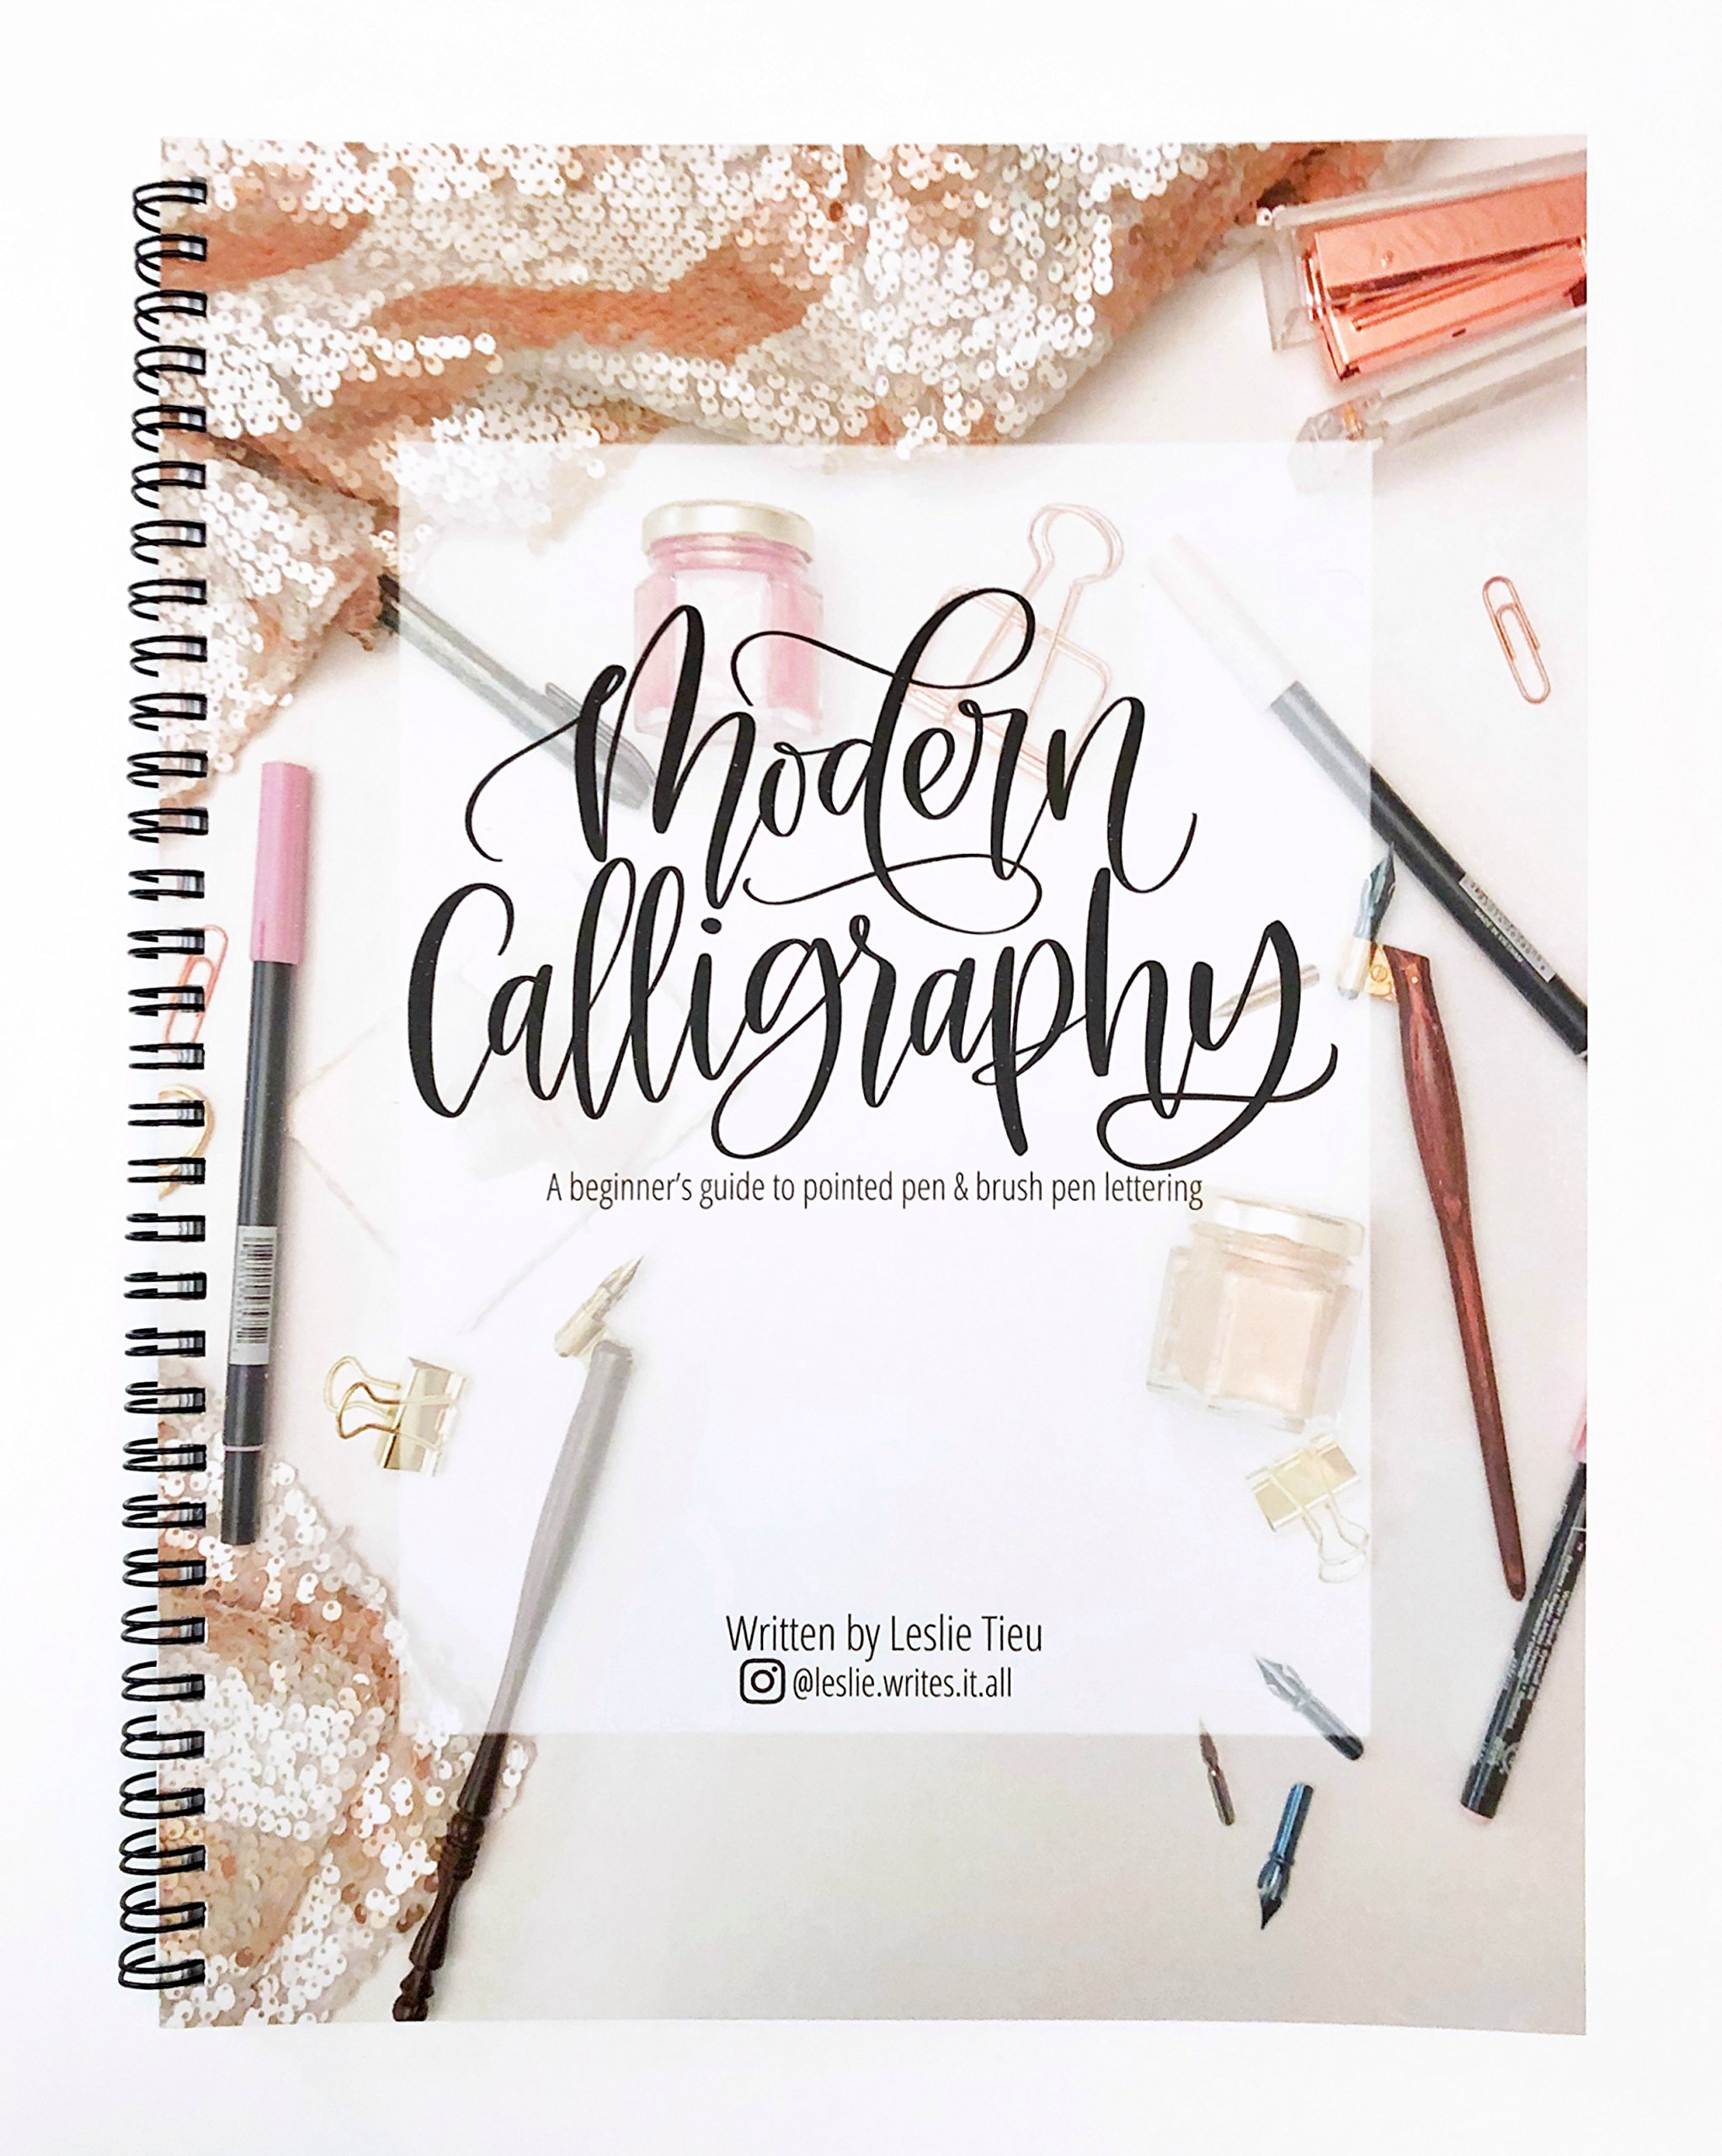 Modern Calligraphy: A Beginner's Guide to Pointed Pen and Brush Pen Lettering by